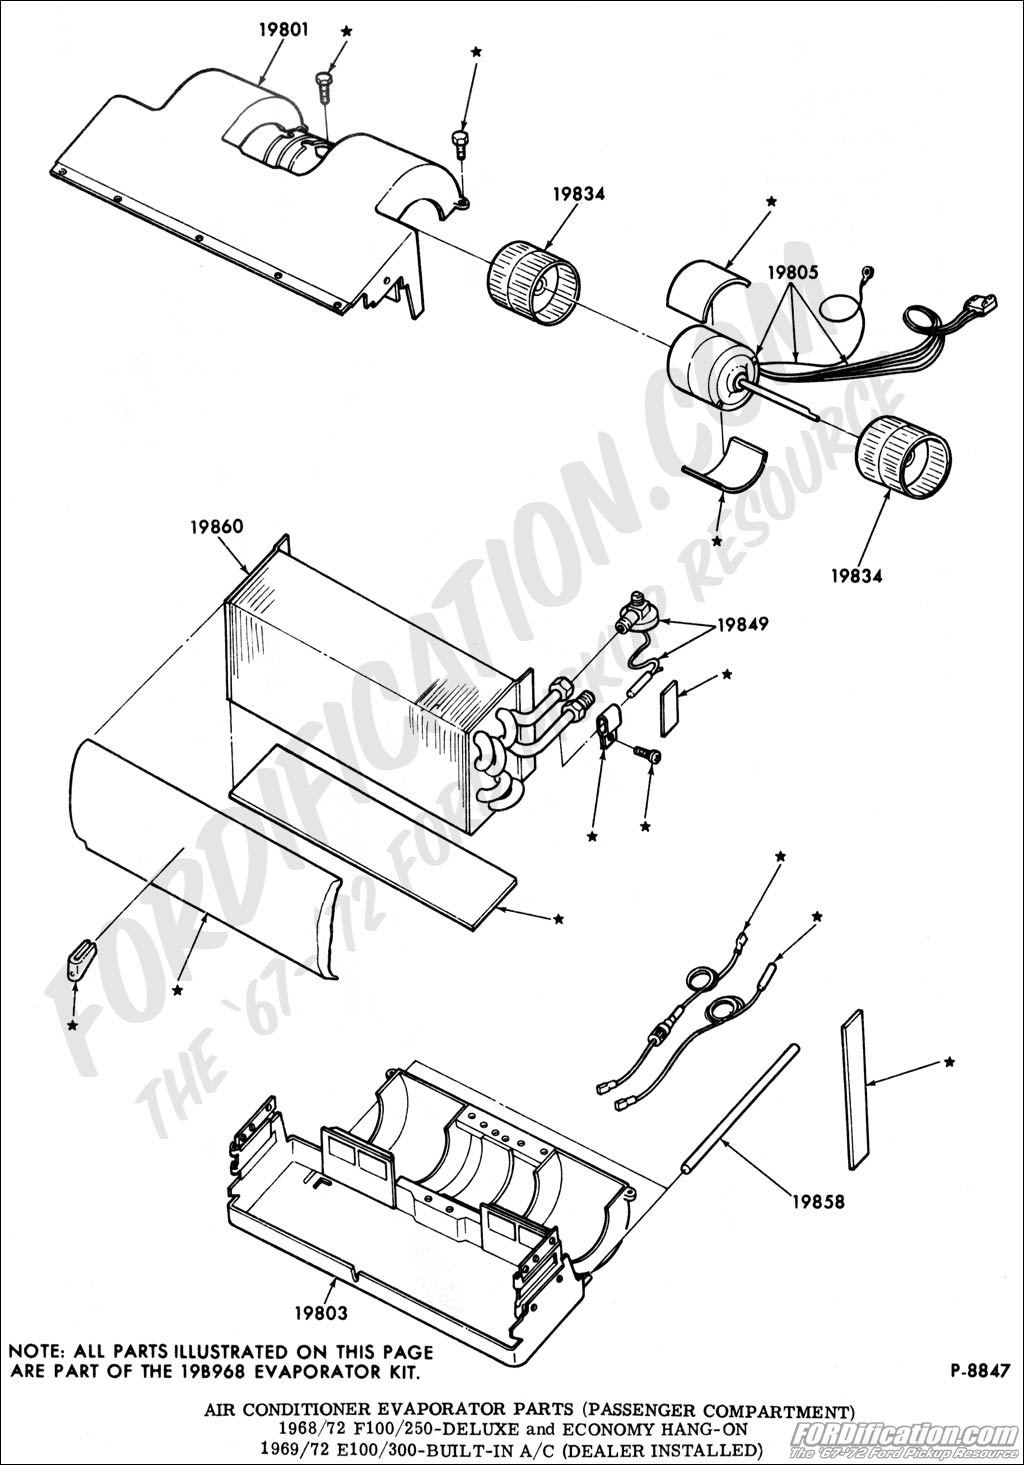 Air Conditioner Drawing At Free For Personal Use Ford Conditioning Systems 1024x1465 Truck Technical Drawings And Schematics